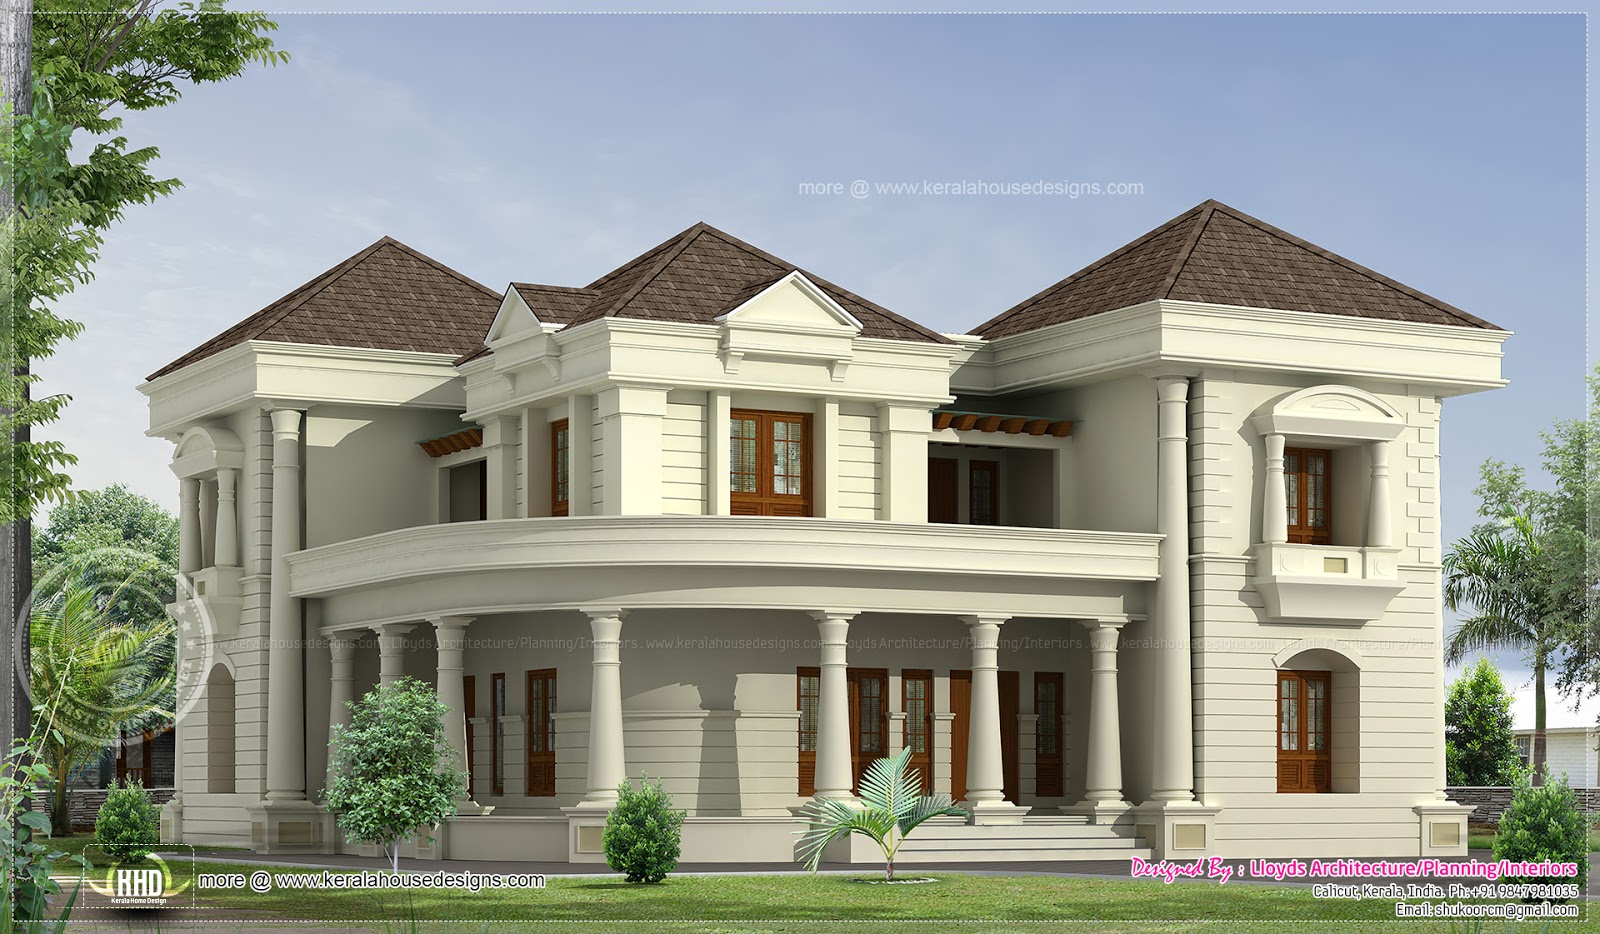 5 bedroom luxurious bungalow floor plan and 3d view for House design indian style plan and elevation